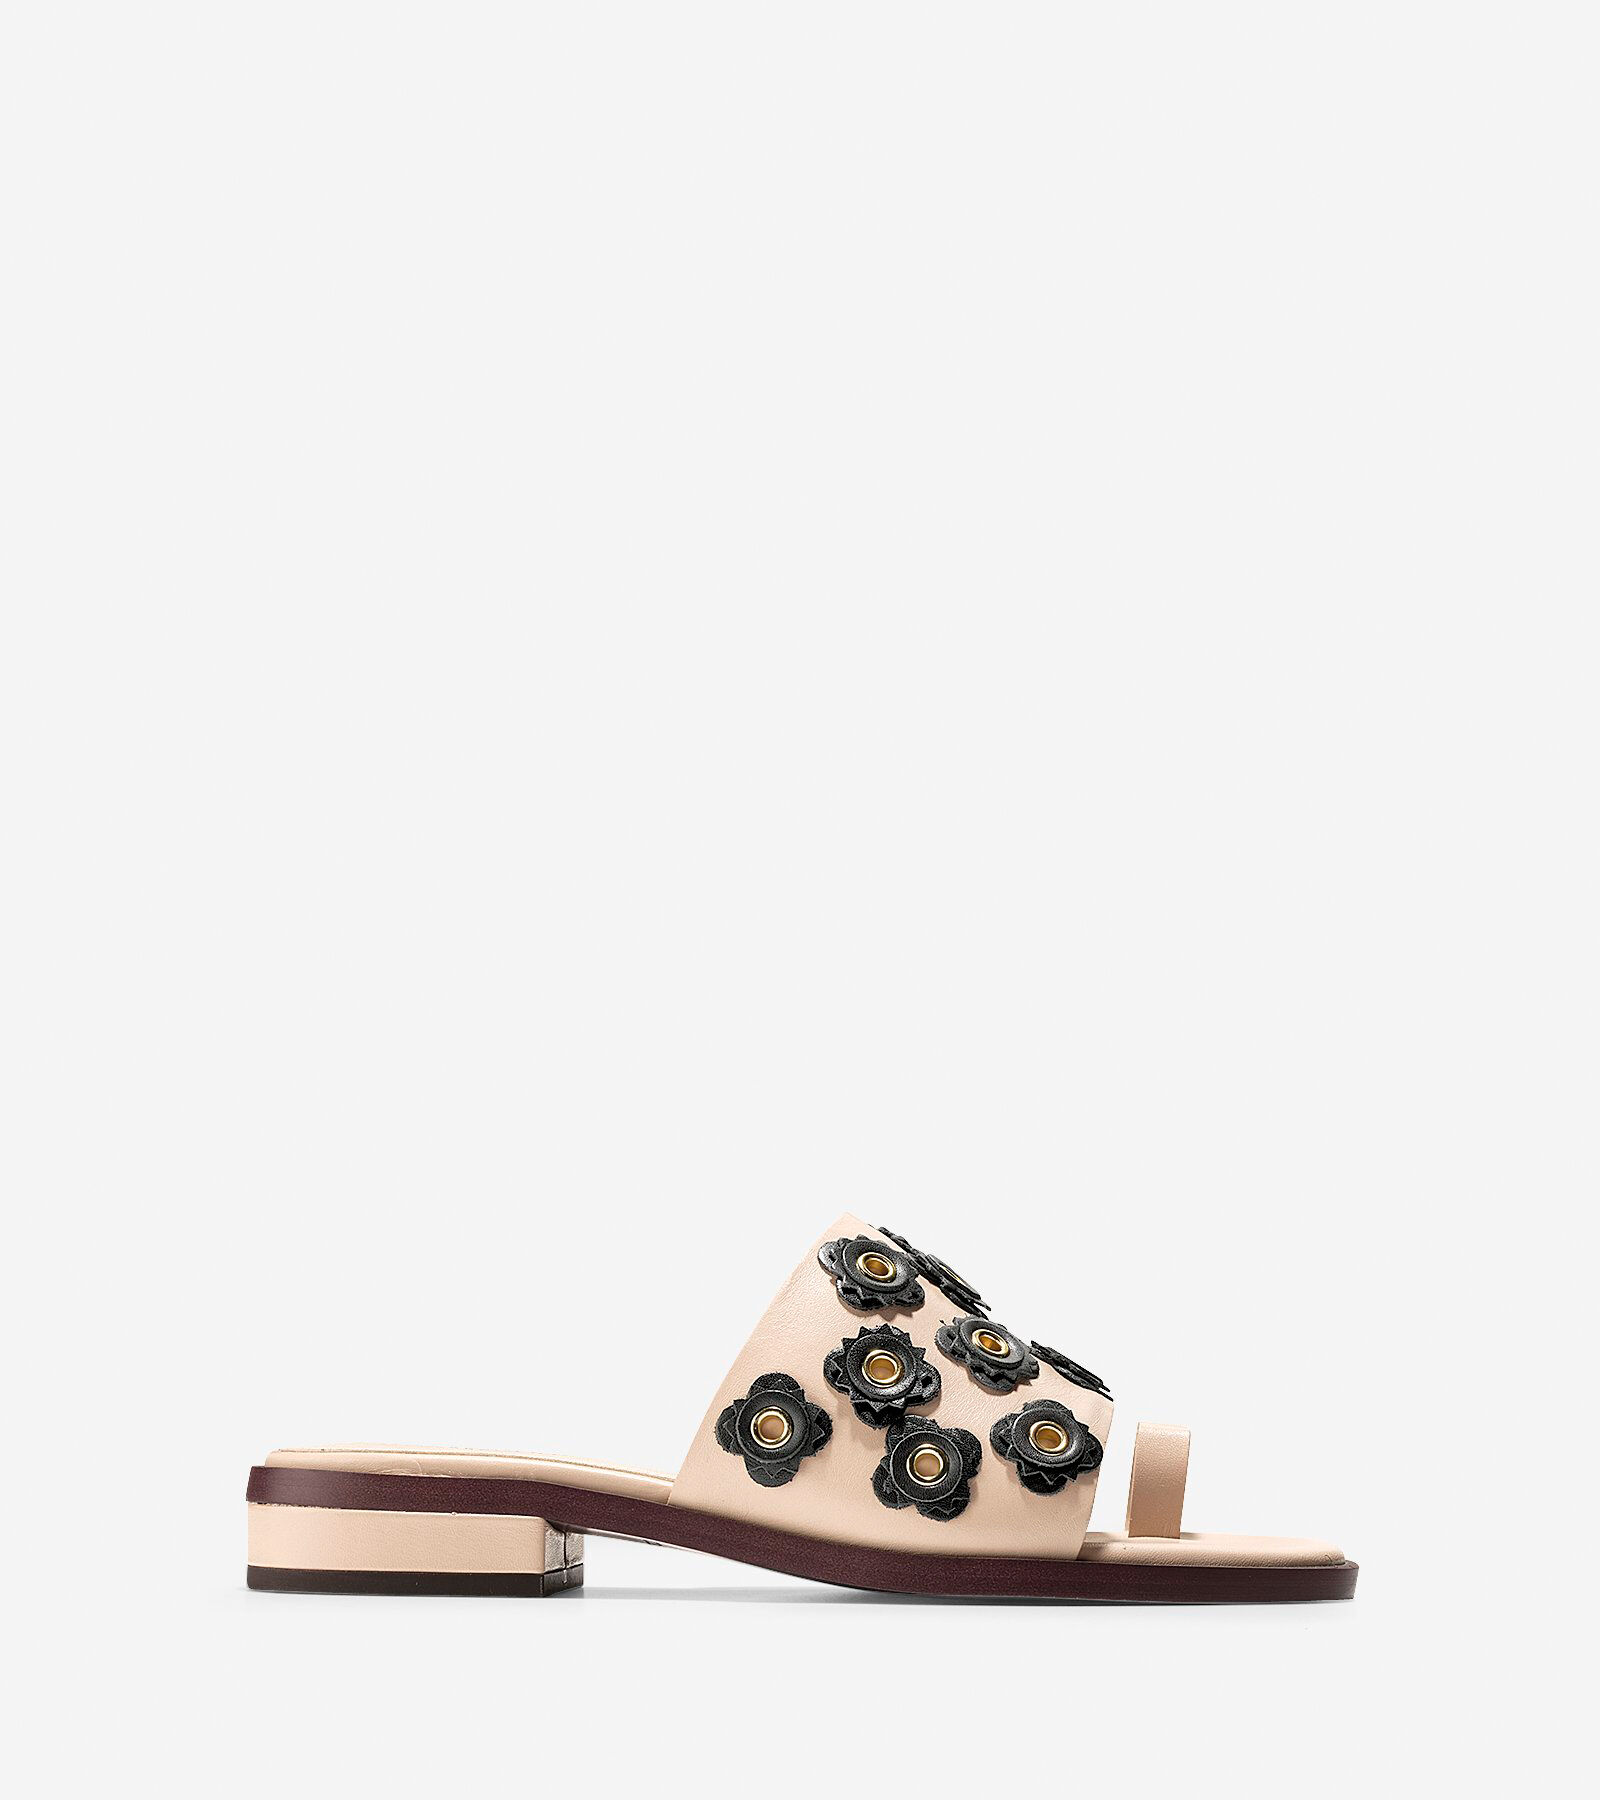 Cole Haan Carly Floral Leather Sandal bMzfA1KW